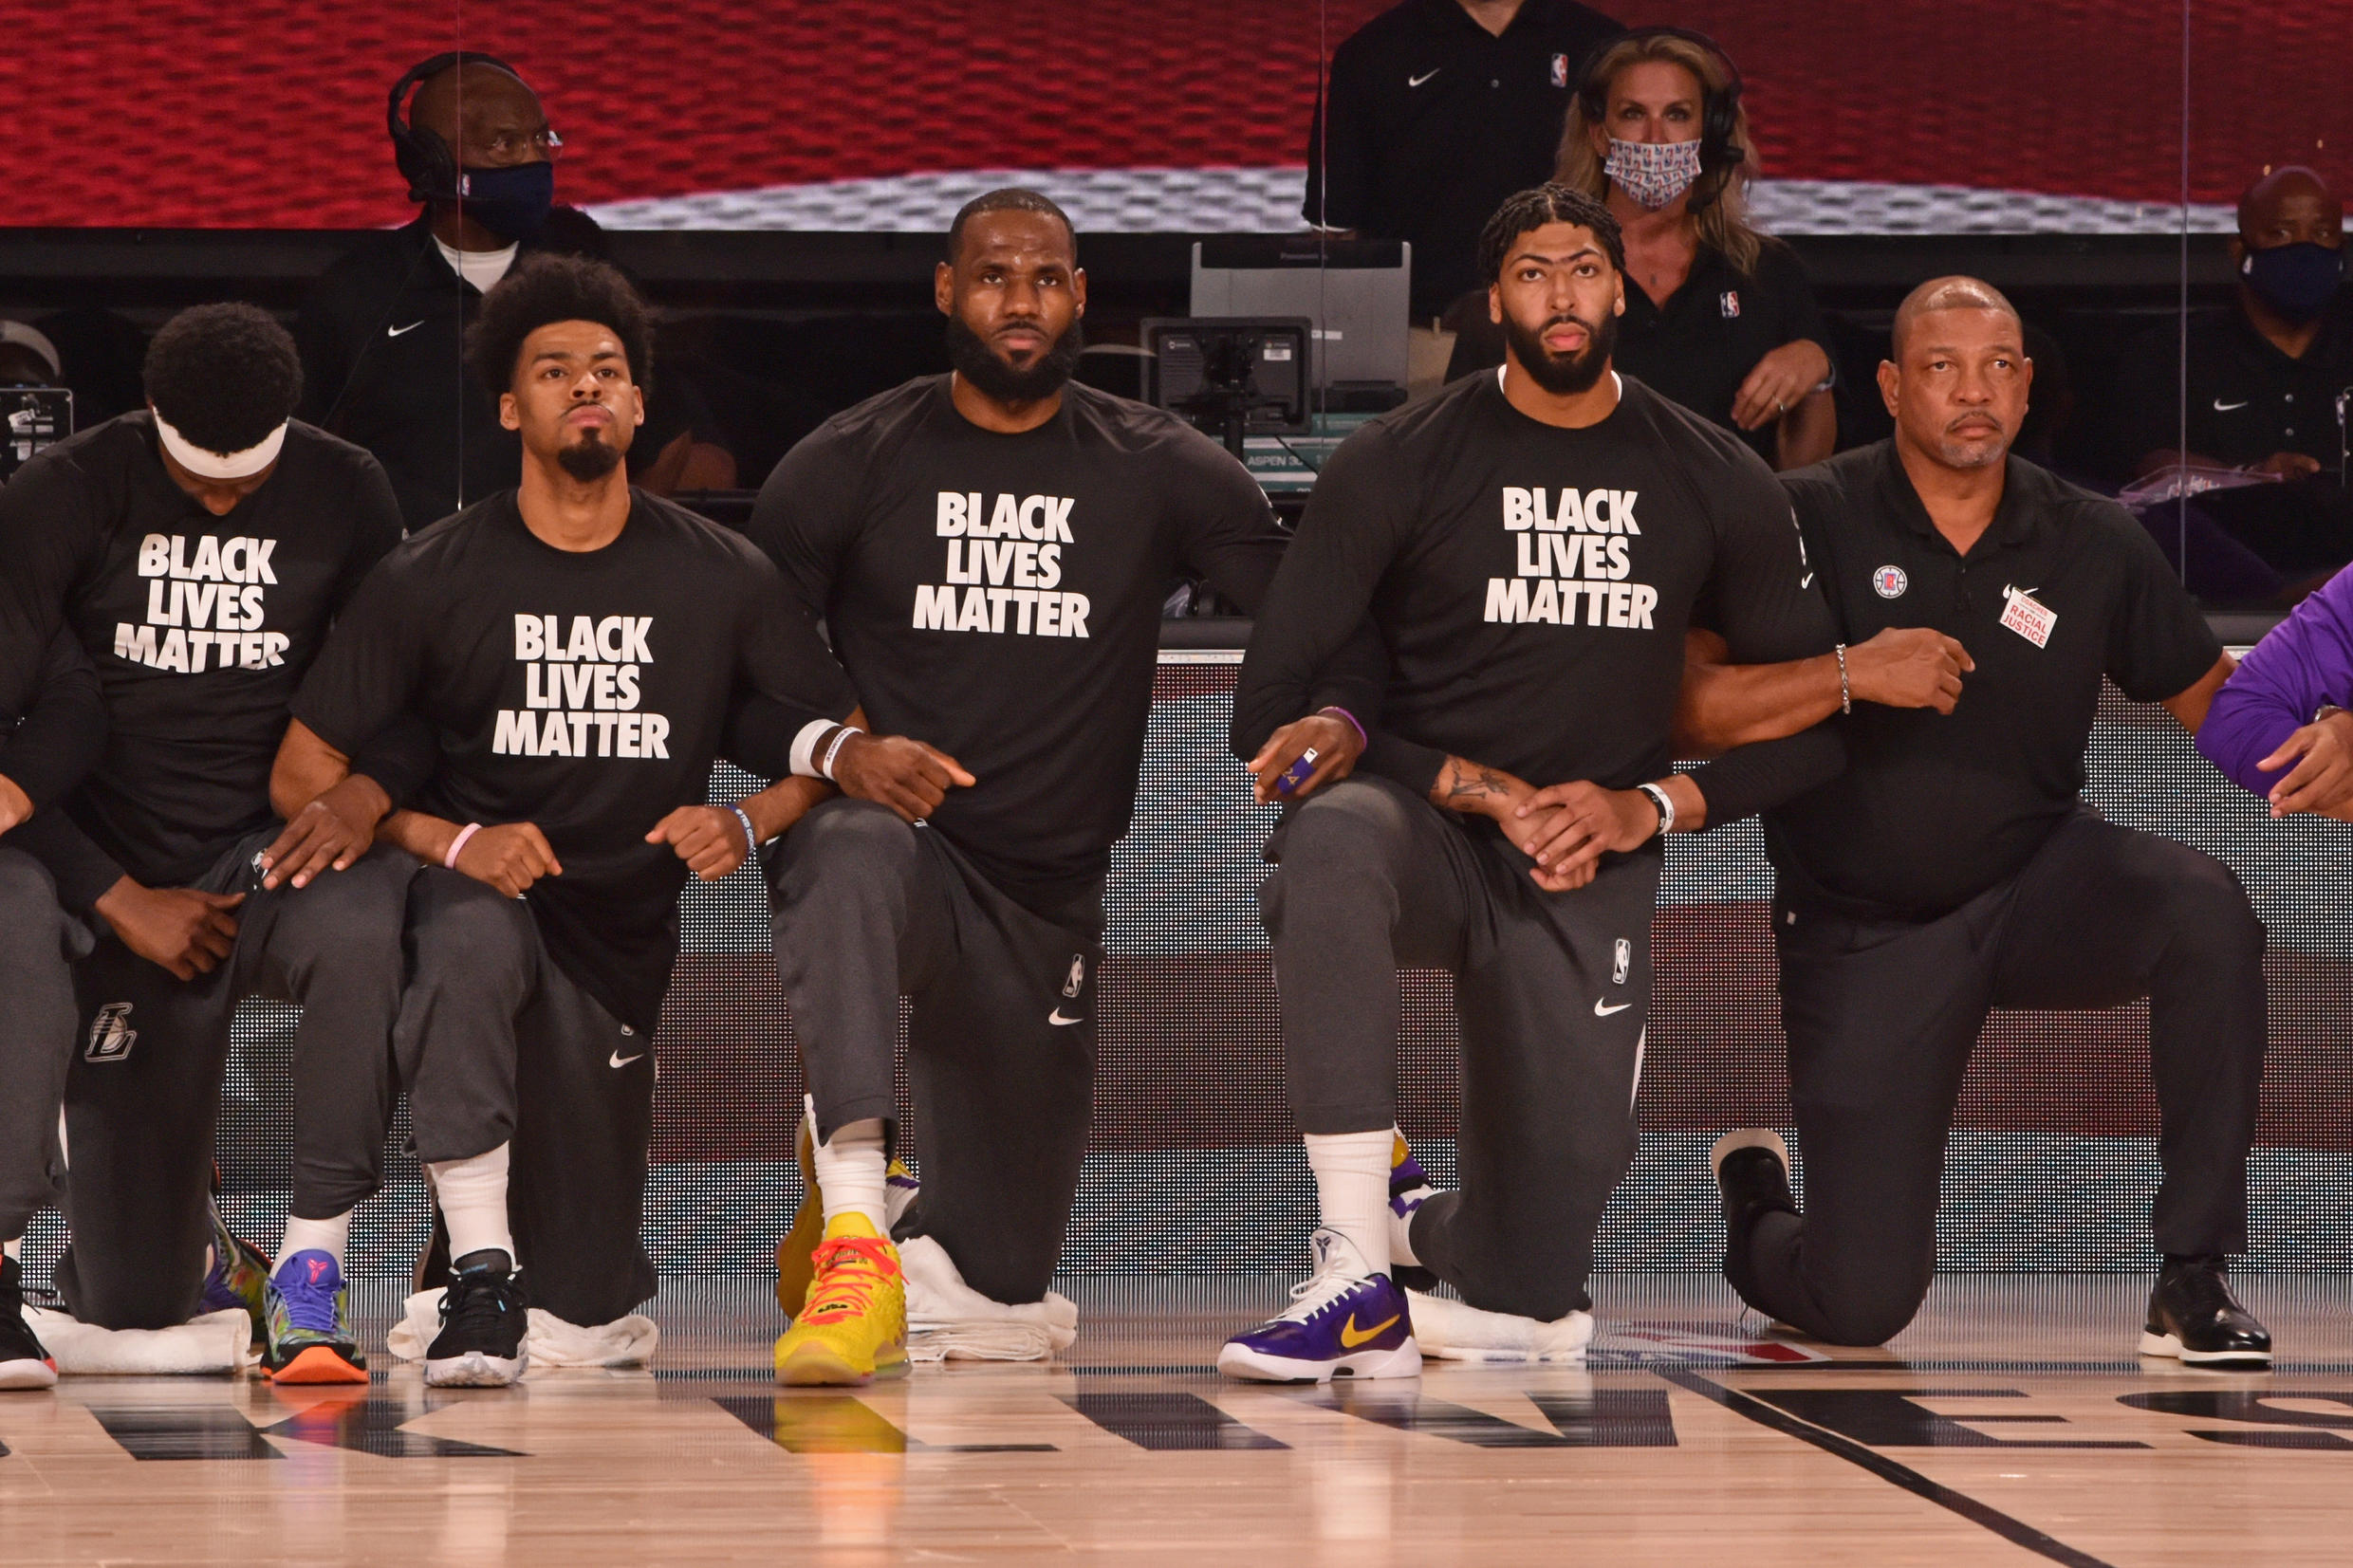 NBA players agreed to enter the Bubble on condition that they could use it as a platform to protest against racial injustice.